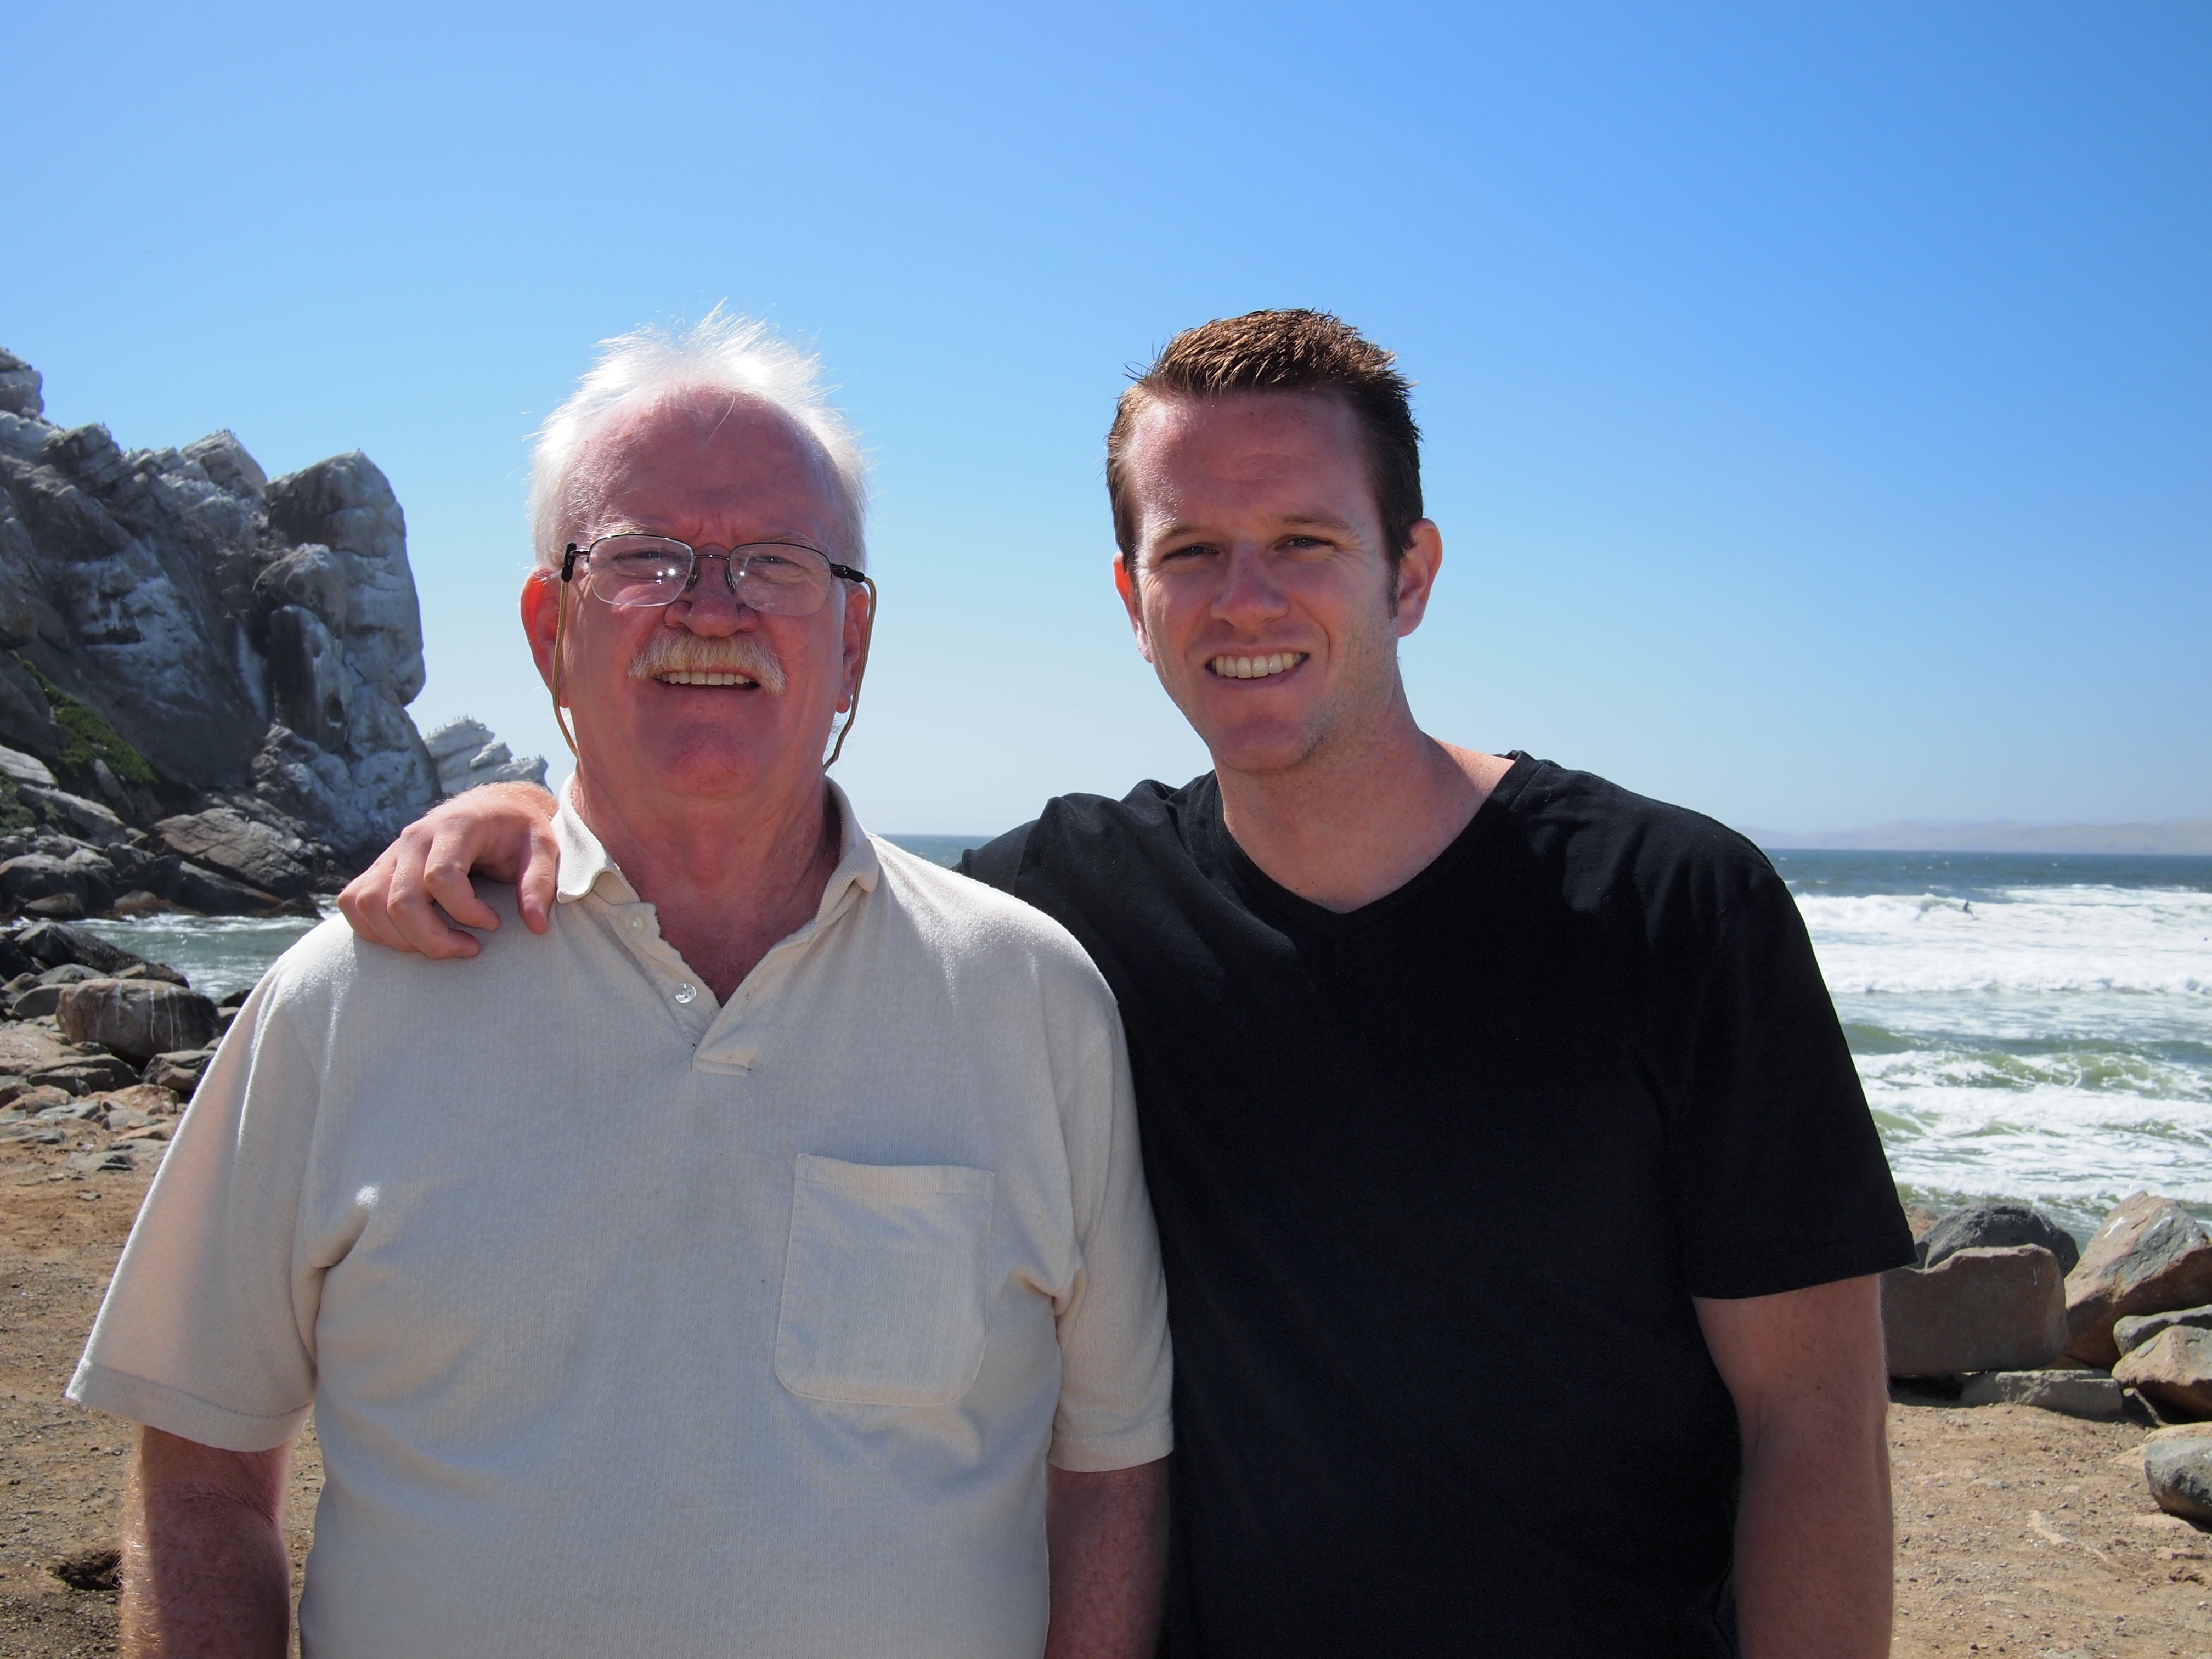 A sunny day with Brandon standing next to his Dad with the beach in the bakground. Brandon' s arm is around his Dad.